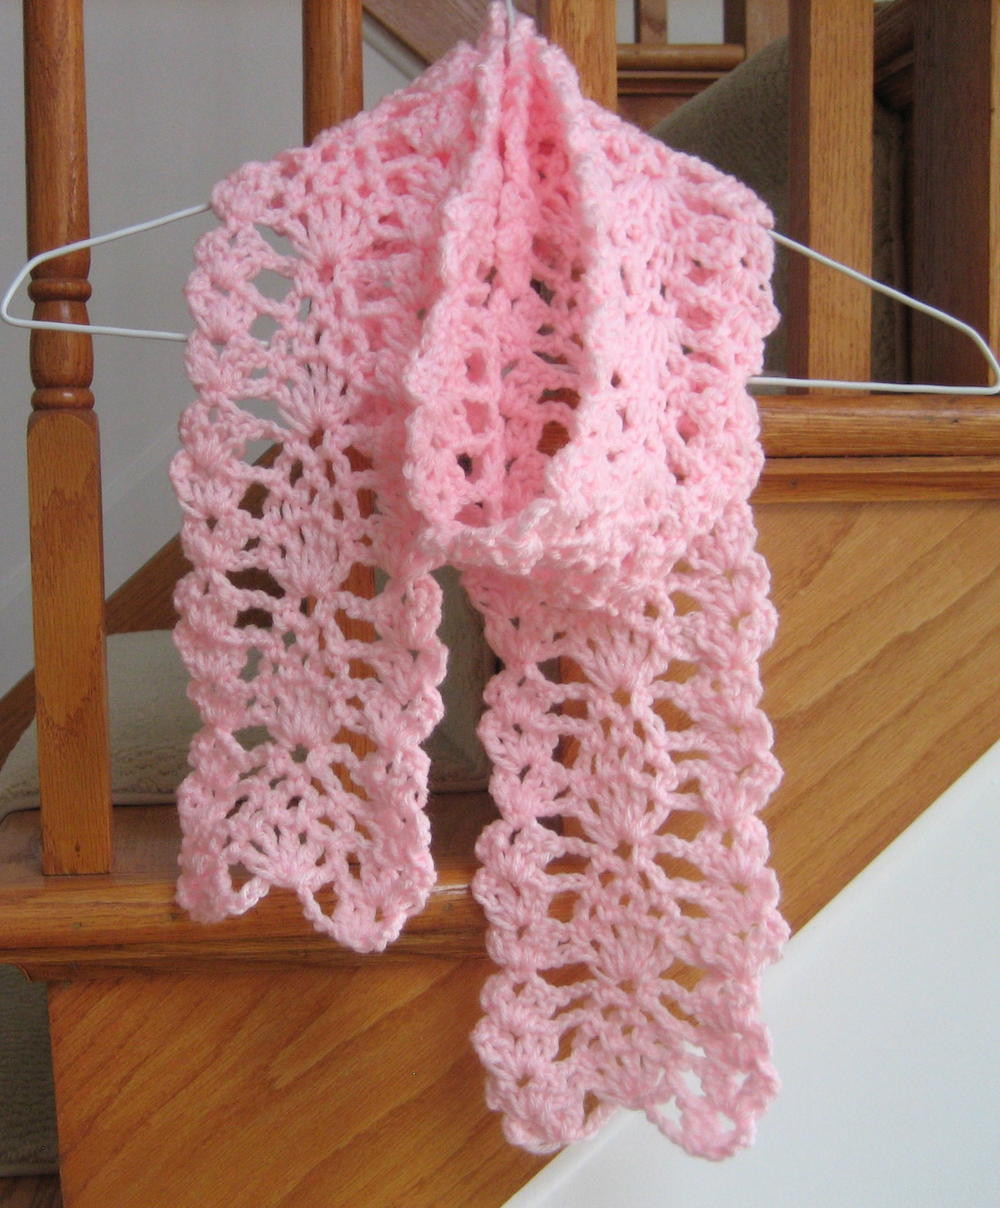 Scarf Crochet Beautiful Lacy Pineapple Crochet Scarf Of Innovative 47 Pictures Scarf Crochet